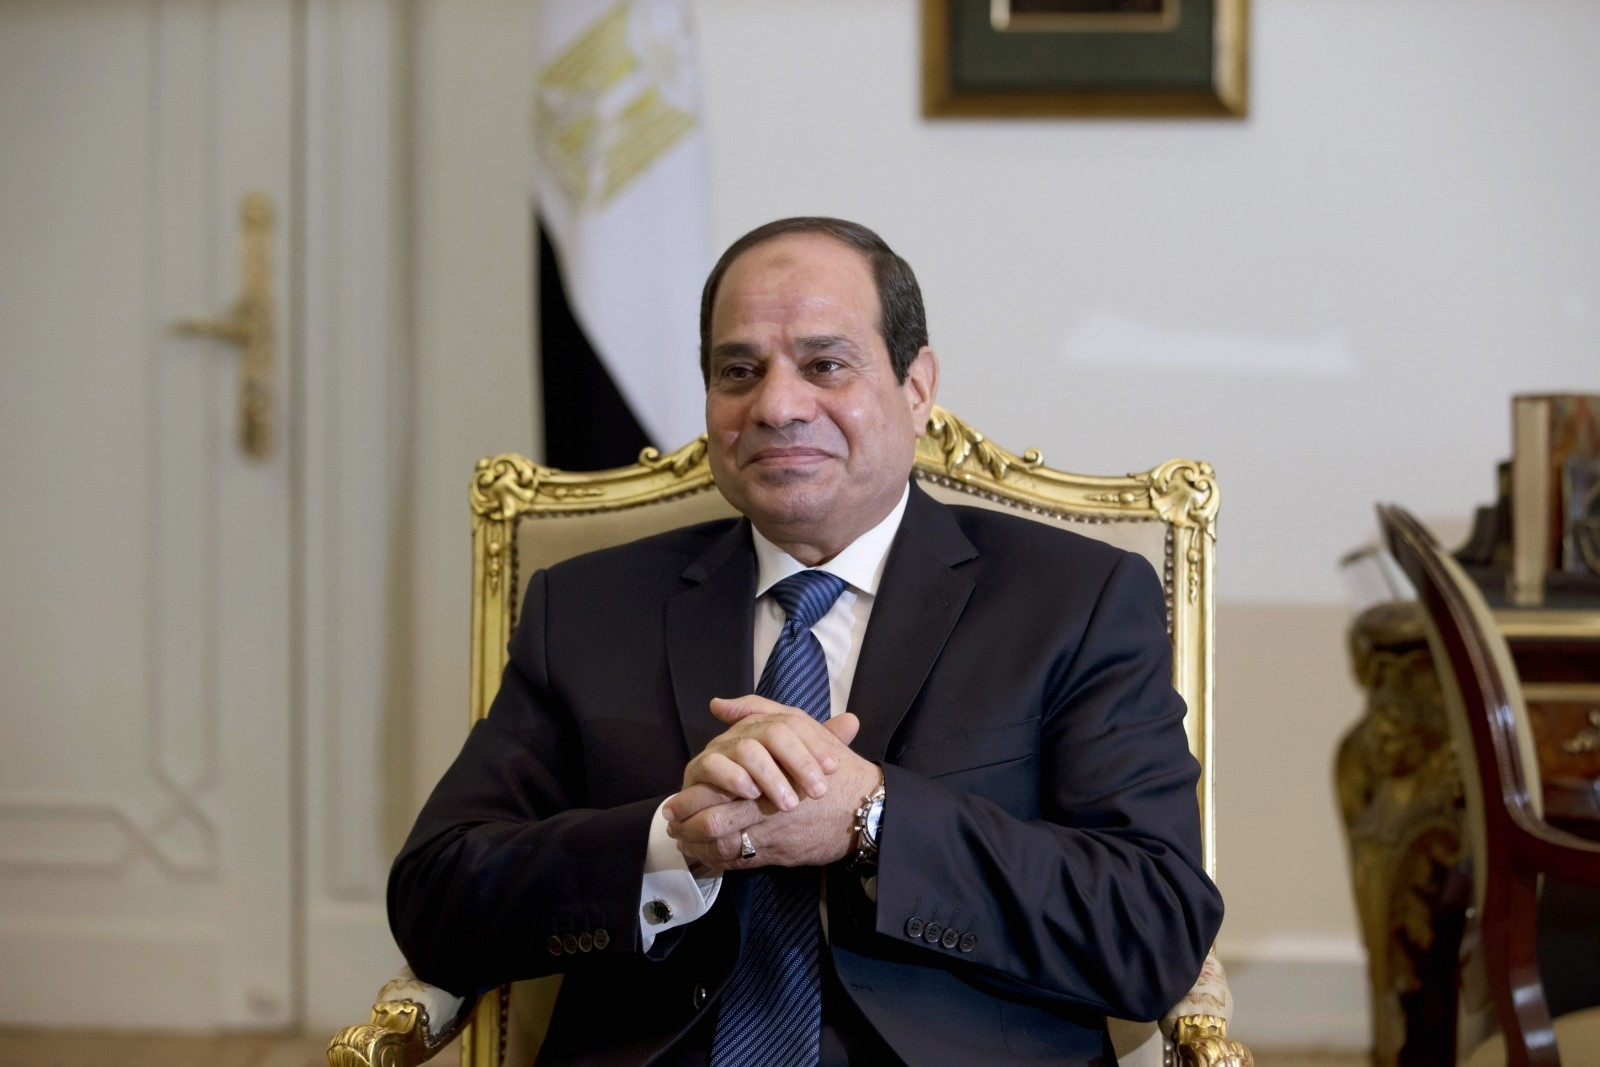 Egypt Prez desires to take ties with India to higher level: Akbar